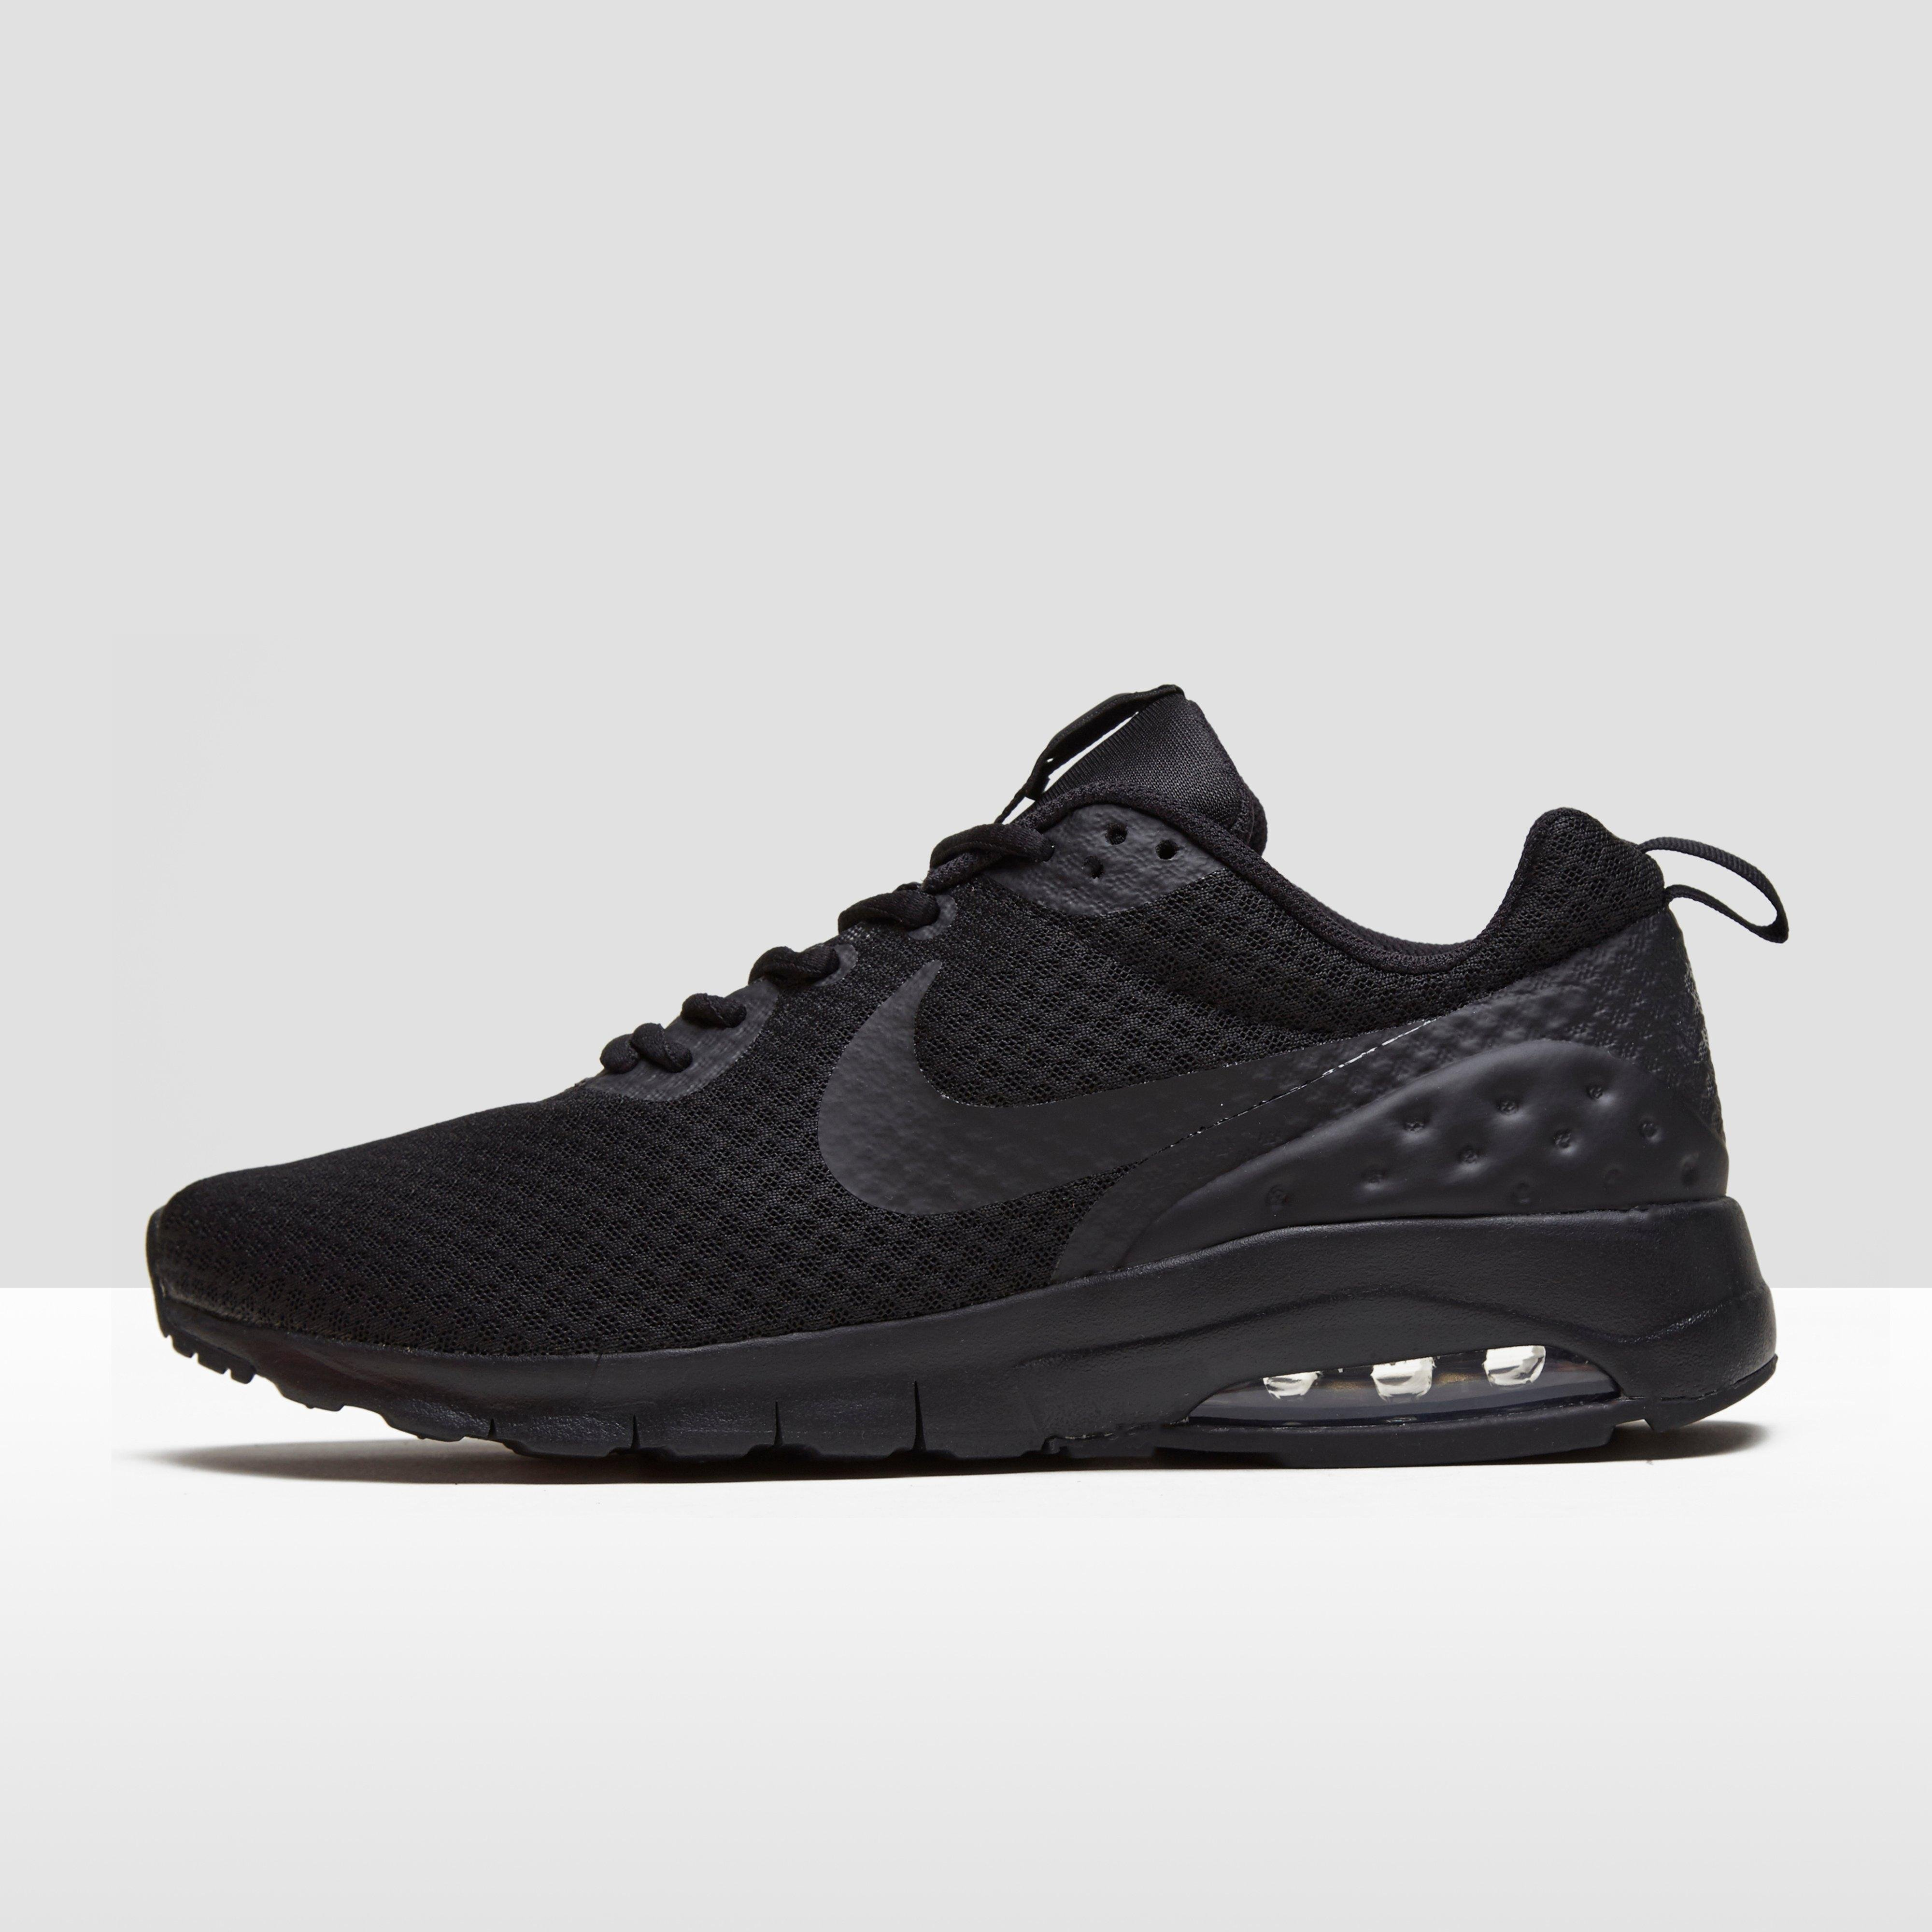 Zwarte Nike Baskets Mouvement Air Max cuaveXl